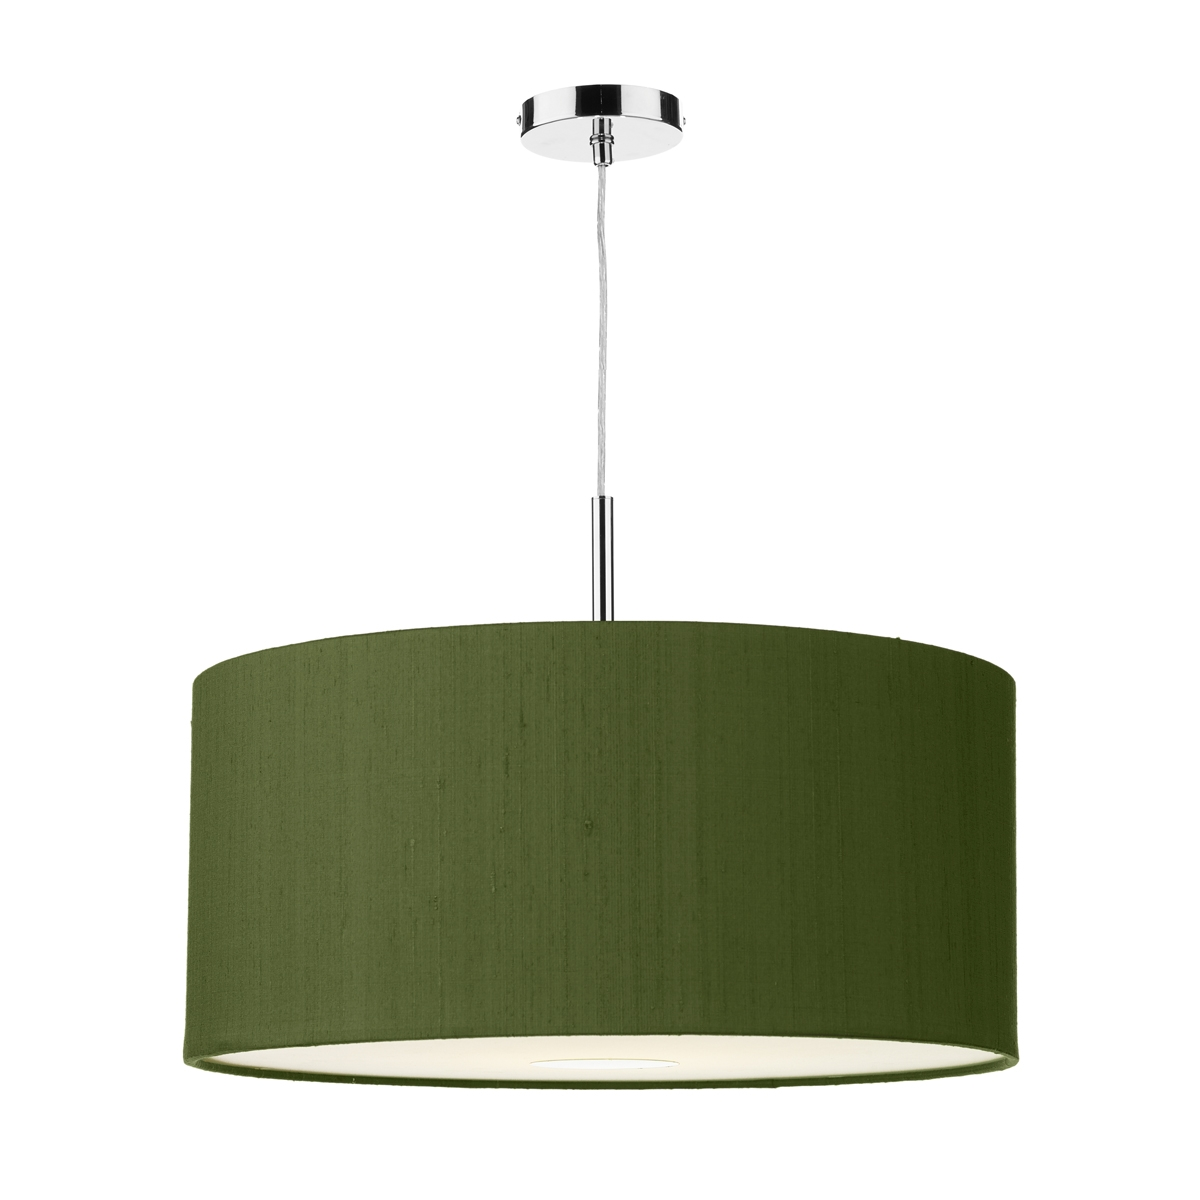 Ellington 50cm 3 Light Pendant